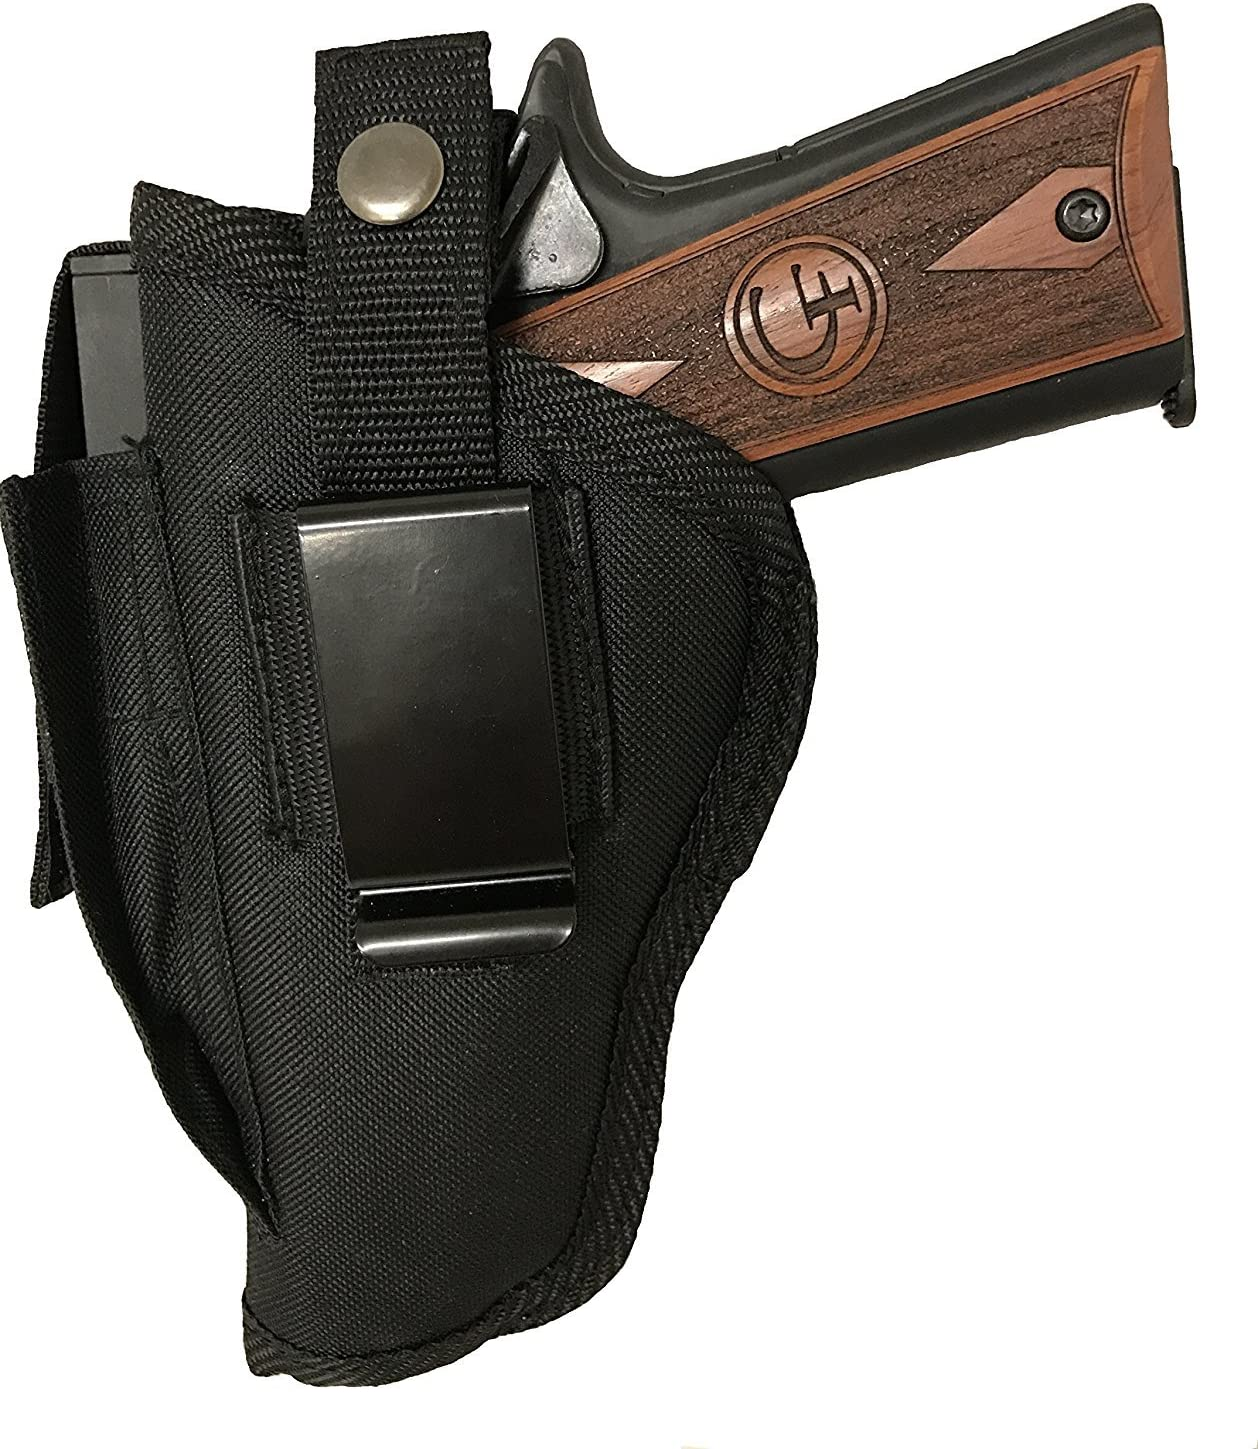 Amazon Com Bama Belts And Leathers Gun Holster Fits Beretta Apx 9mm Or 40 S W Black Nylon Ambidextrous Use Left Or Right Built In Magazine Holder Adjustable Retention Strap Gun Slinger Holster